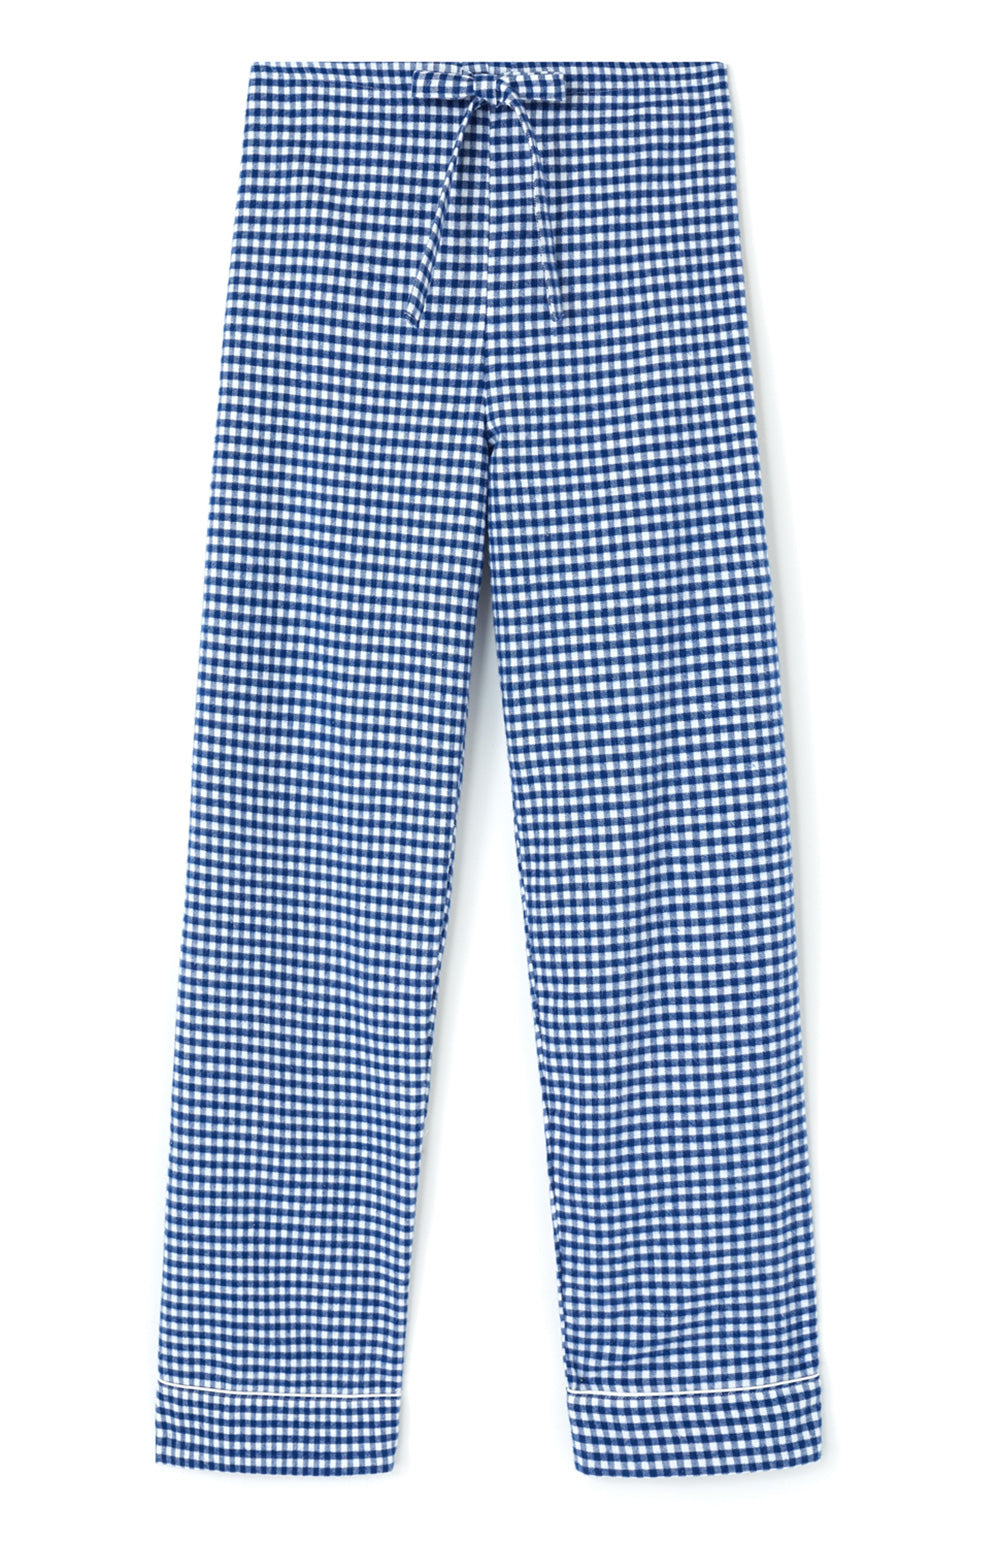 Women's Brushed Cotton Navy Gingham Pyjama Trousers | Bonsoir of London